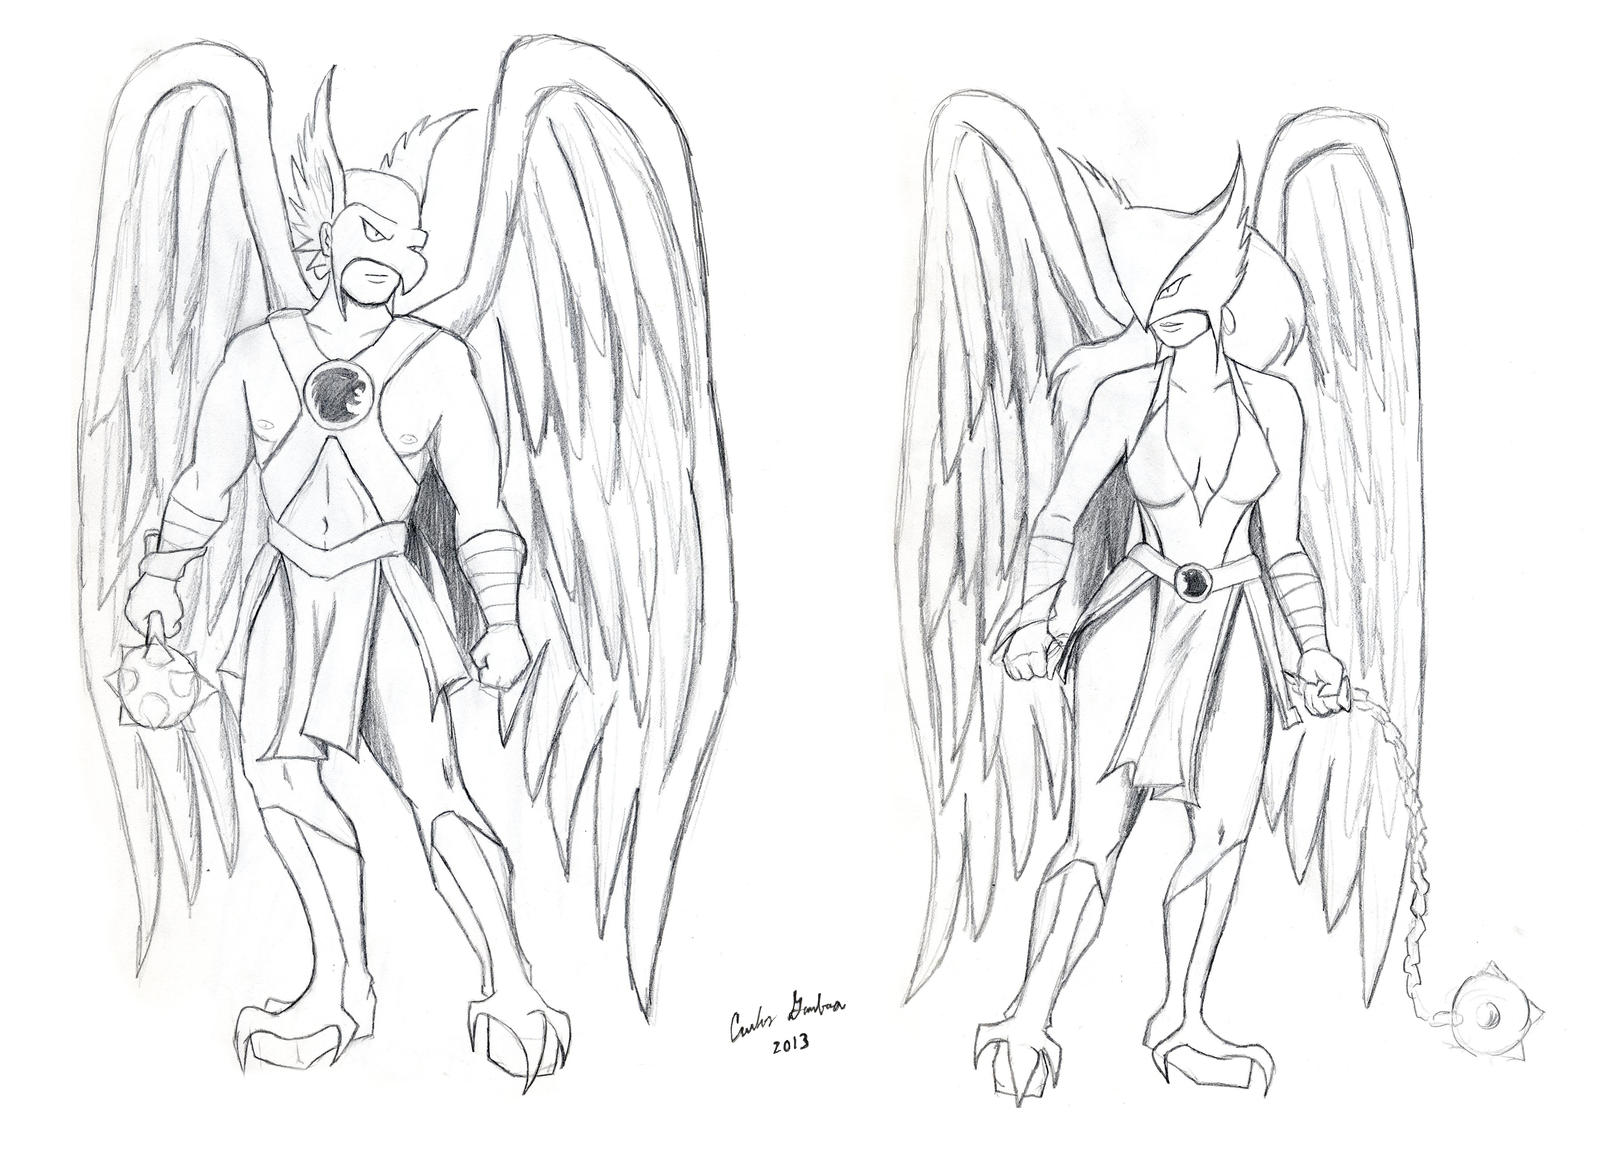 hawkman coloring pages - photo#34